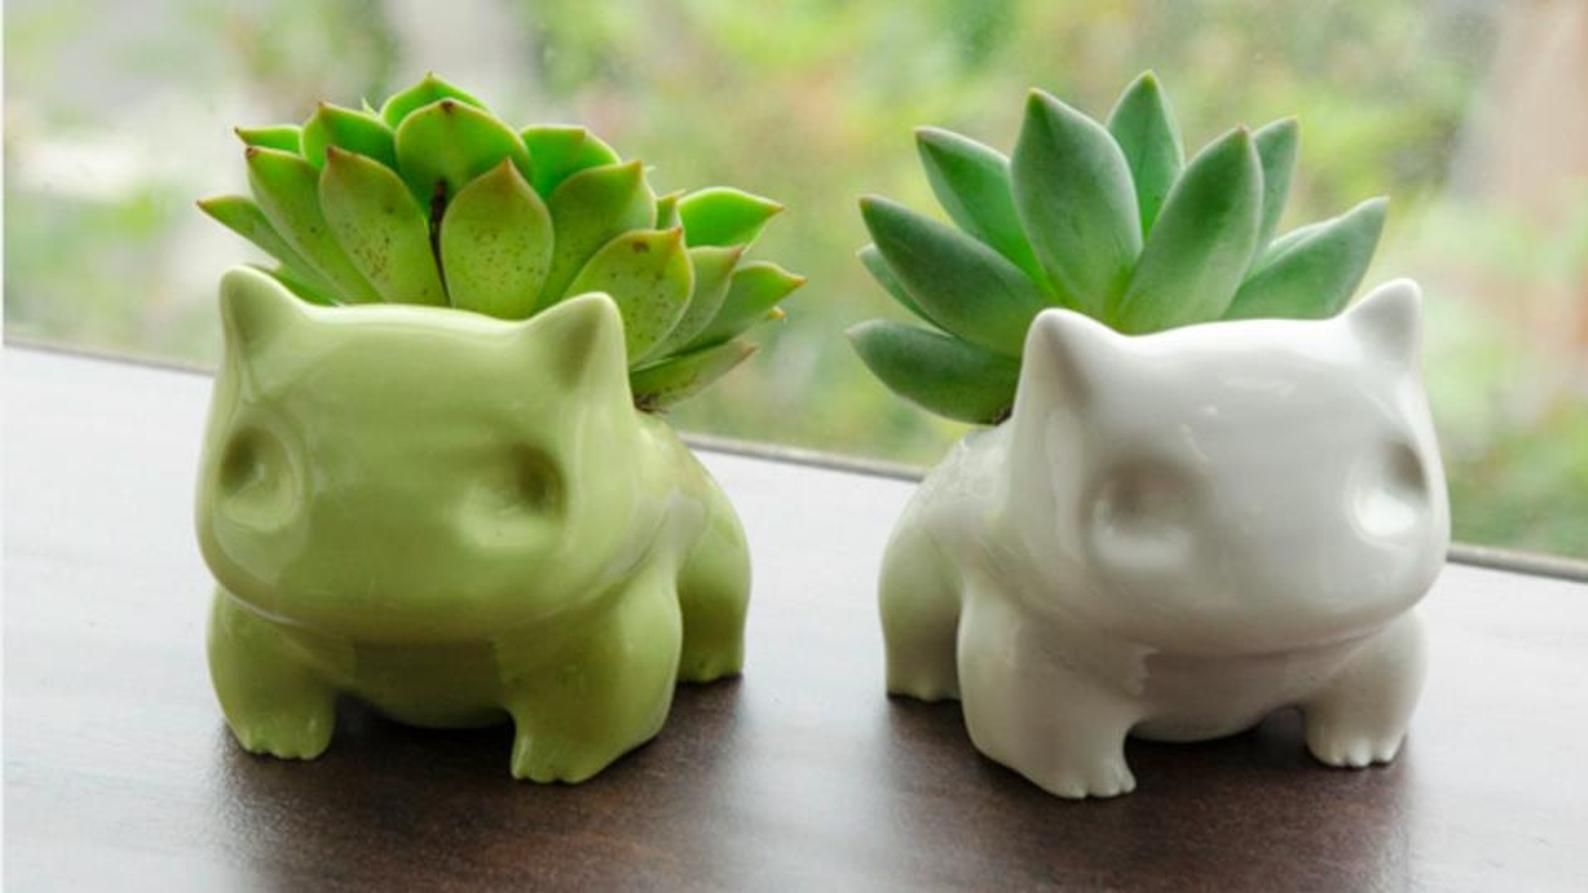 Ceramic Bulbasaur Planter / Flower Pot - 2 sizes a